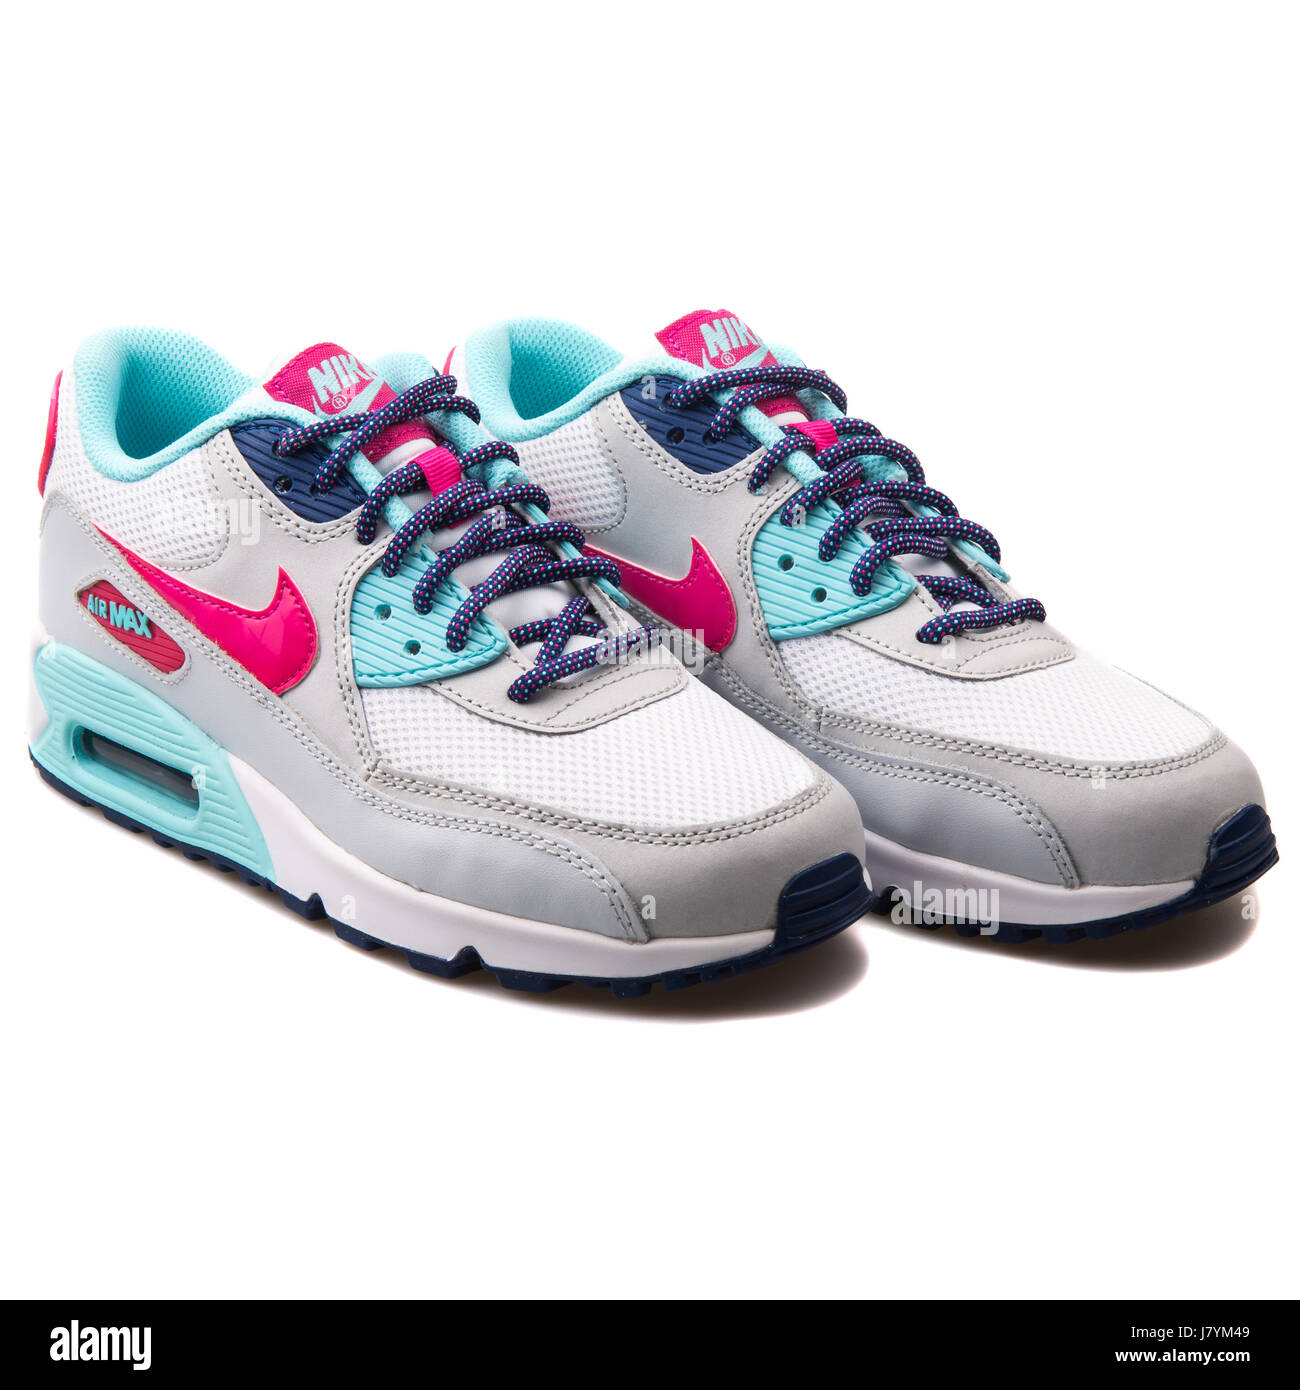 nike air max 90 youth gs Weiß